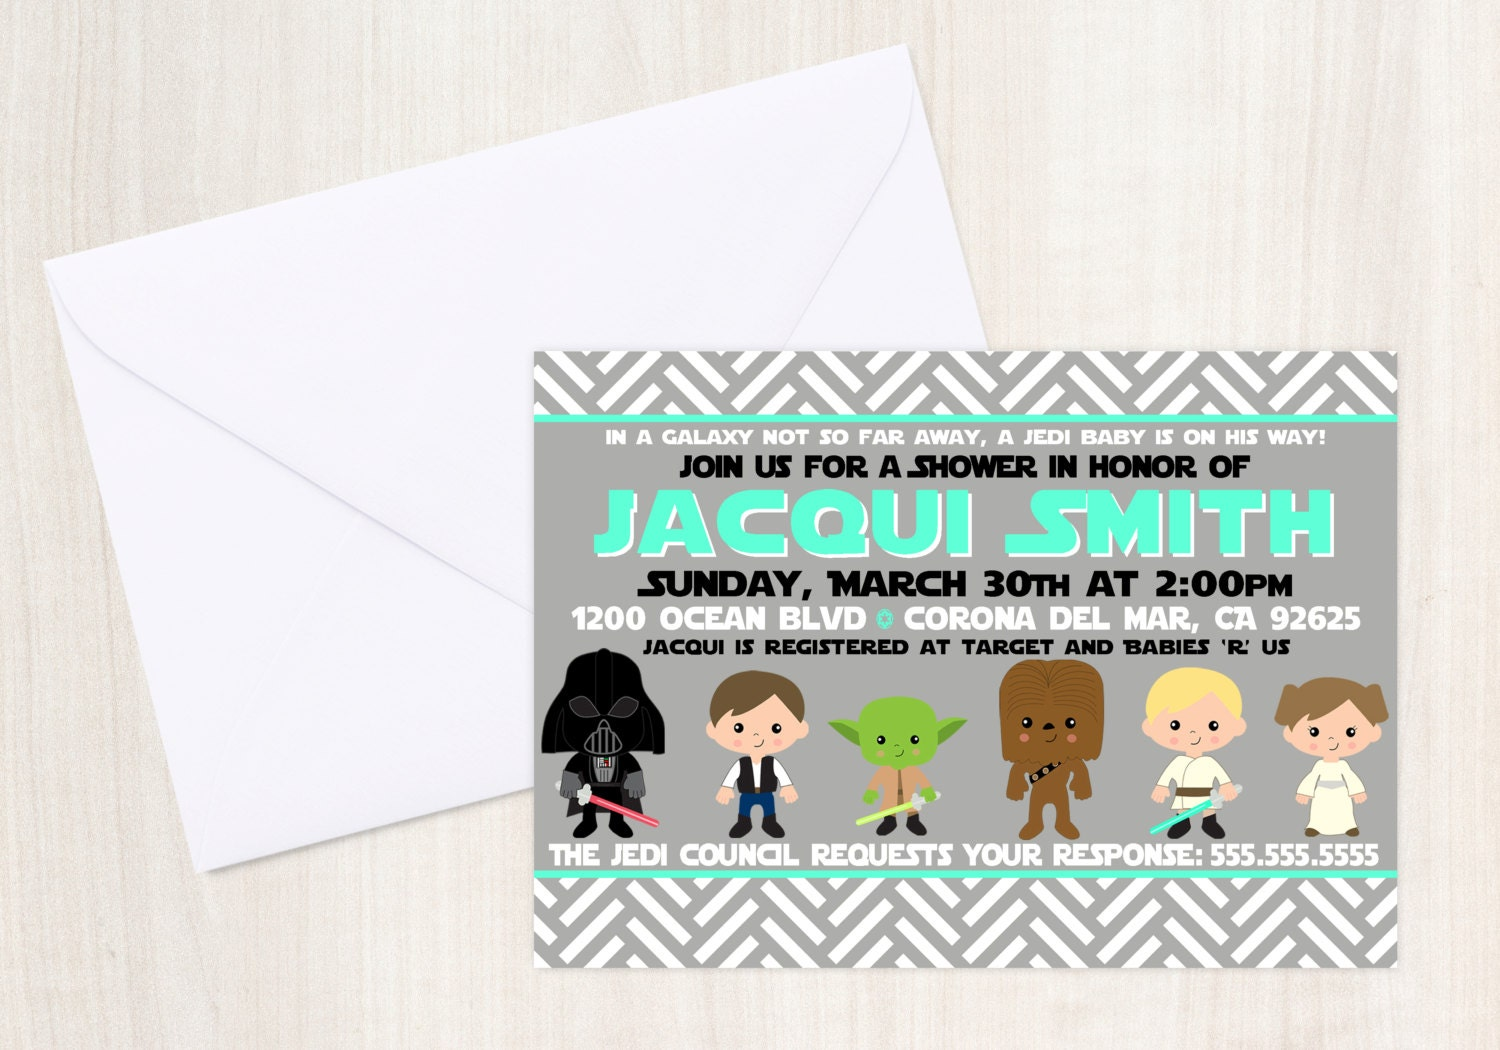 Star Wars Shower Custom Party Pack - Star Wars Party Invitation - Party Supplies